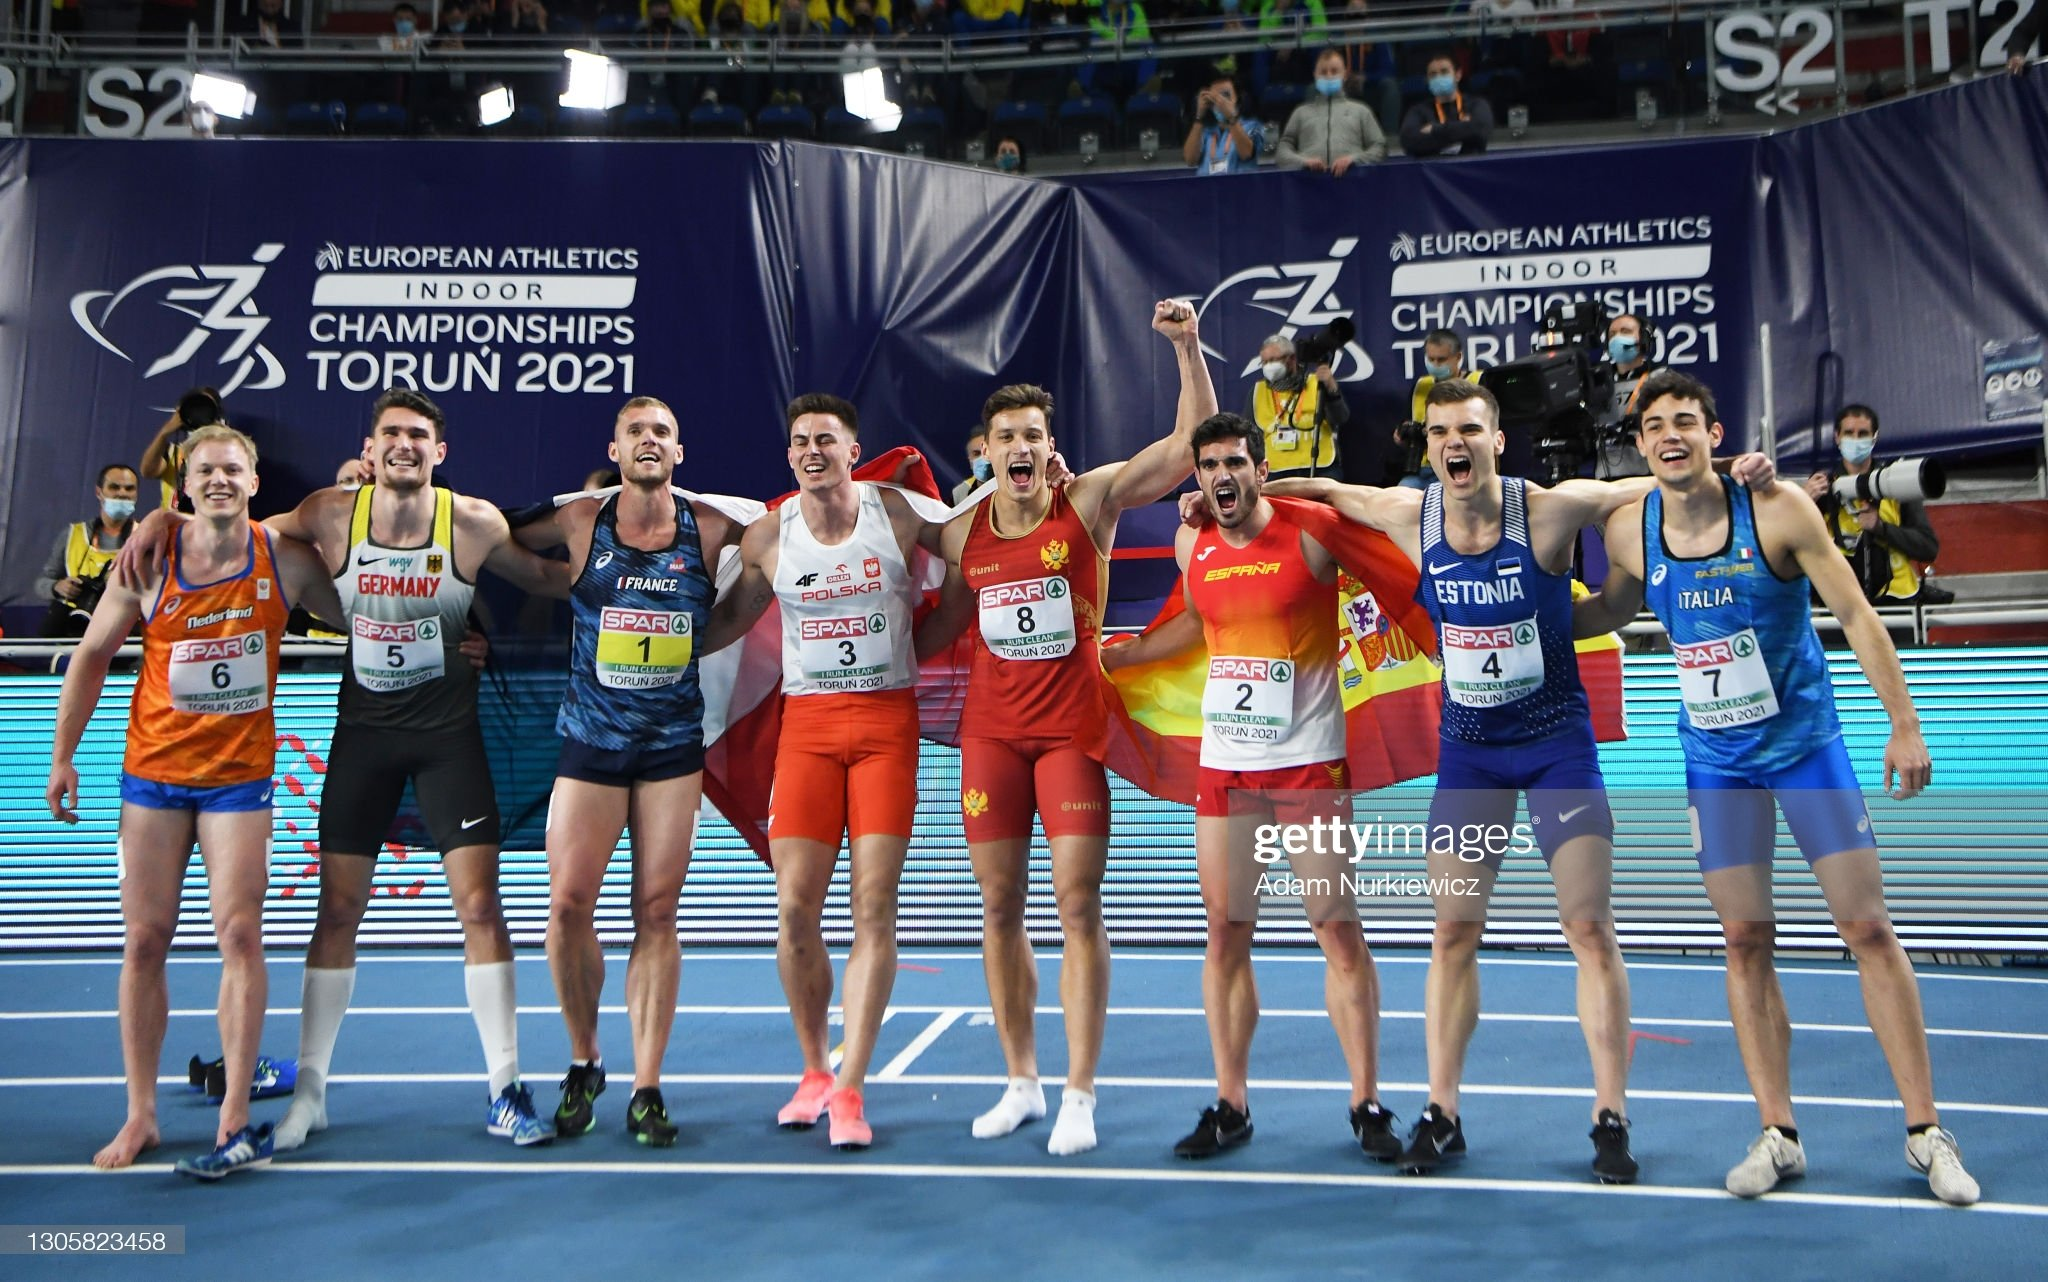 2021 European Athletics Indoor Championships - Day 3